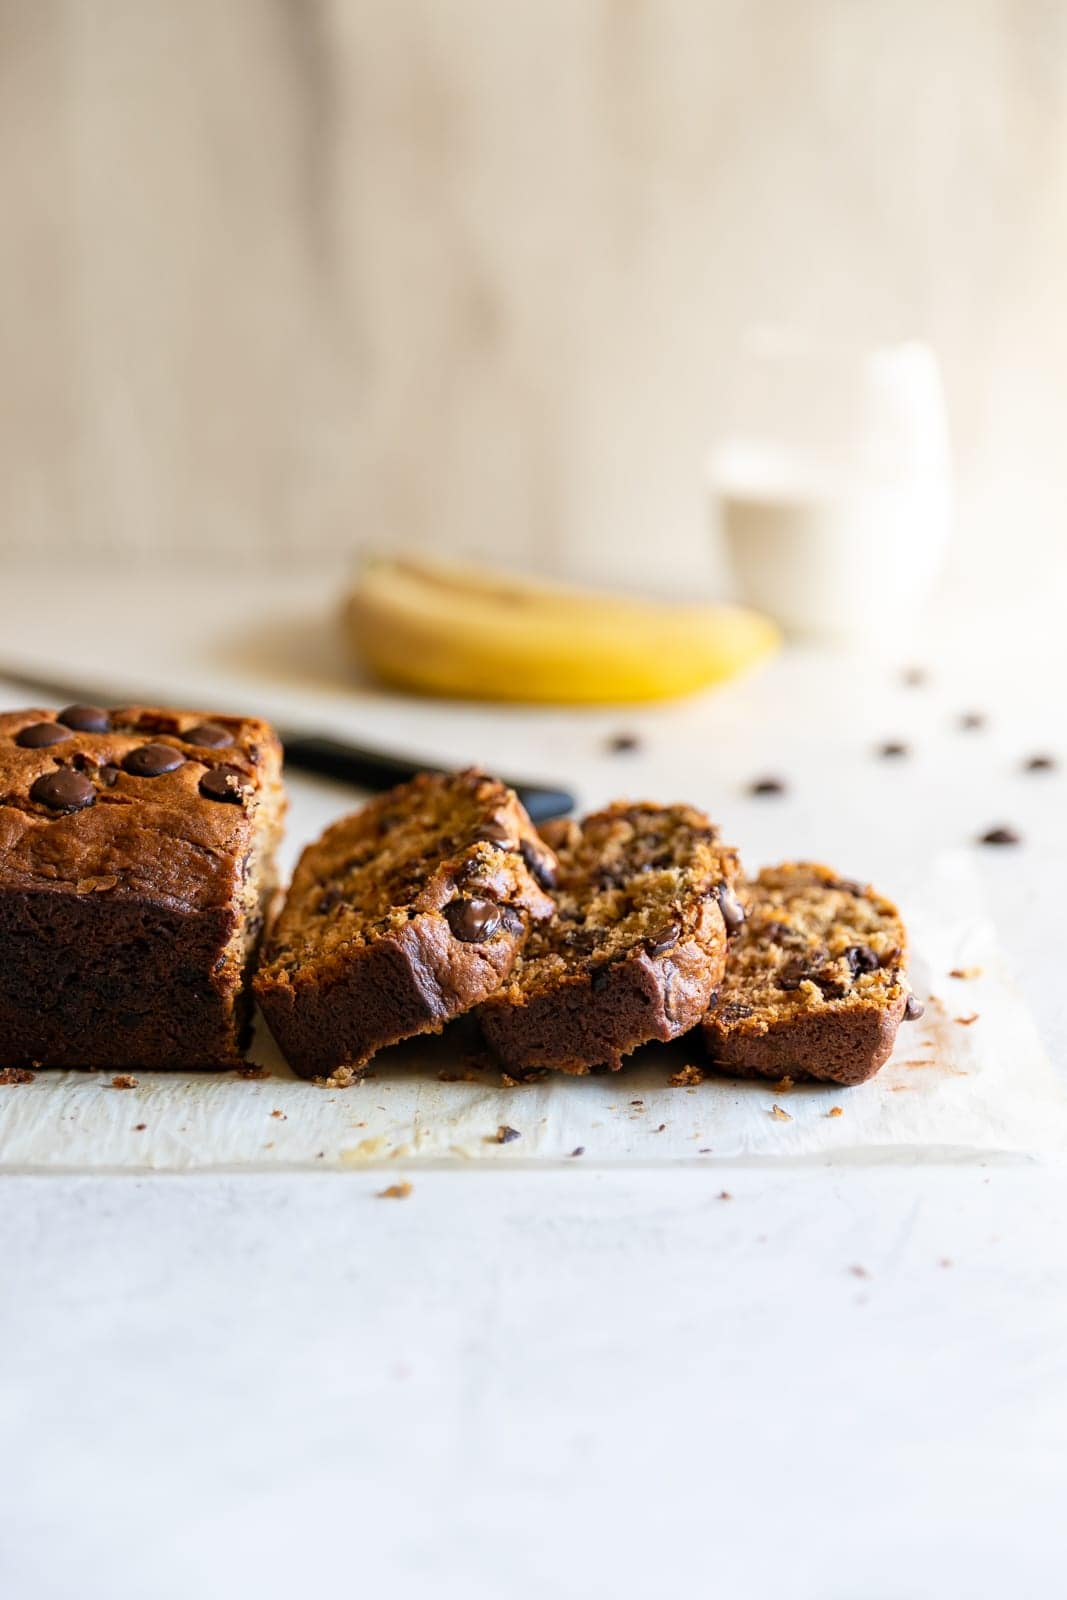 Delicious display of chocolate chip banana bread slices